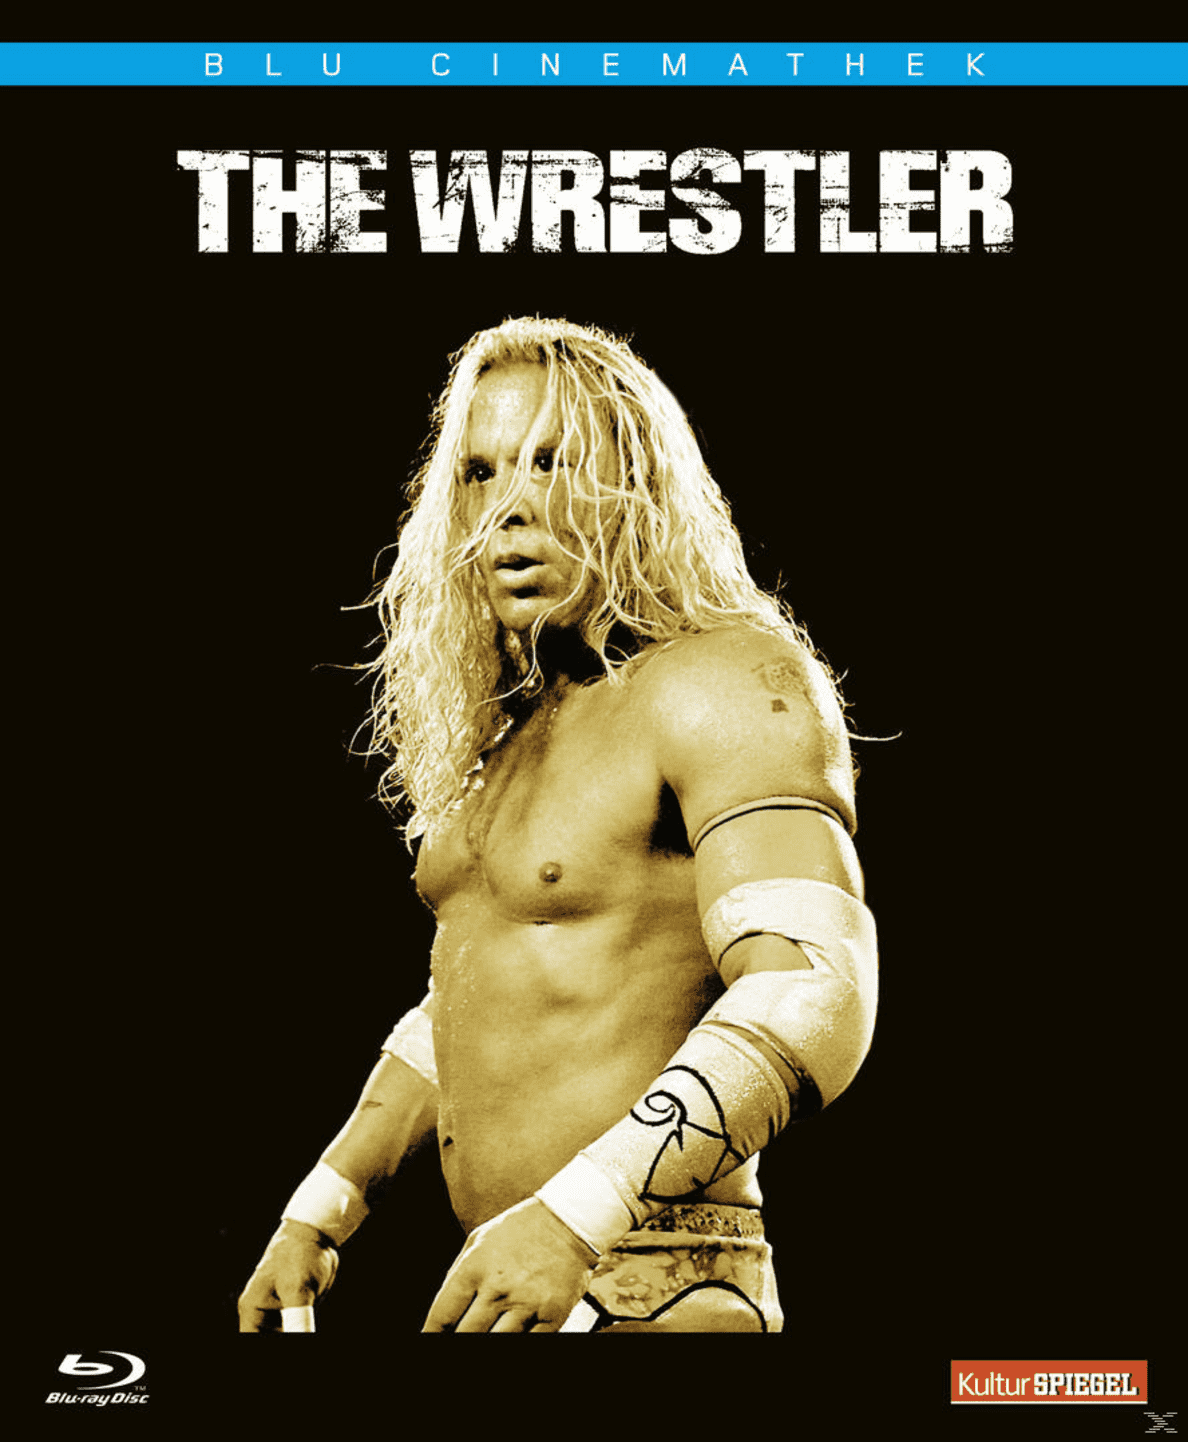 The Wrestler - Blu Cinemathek auf Blu-ray